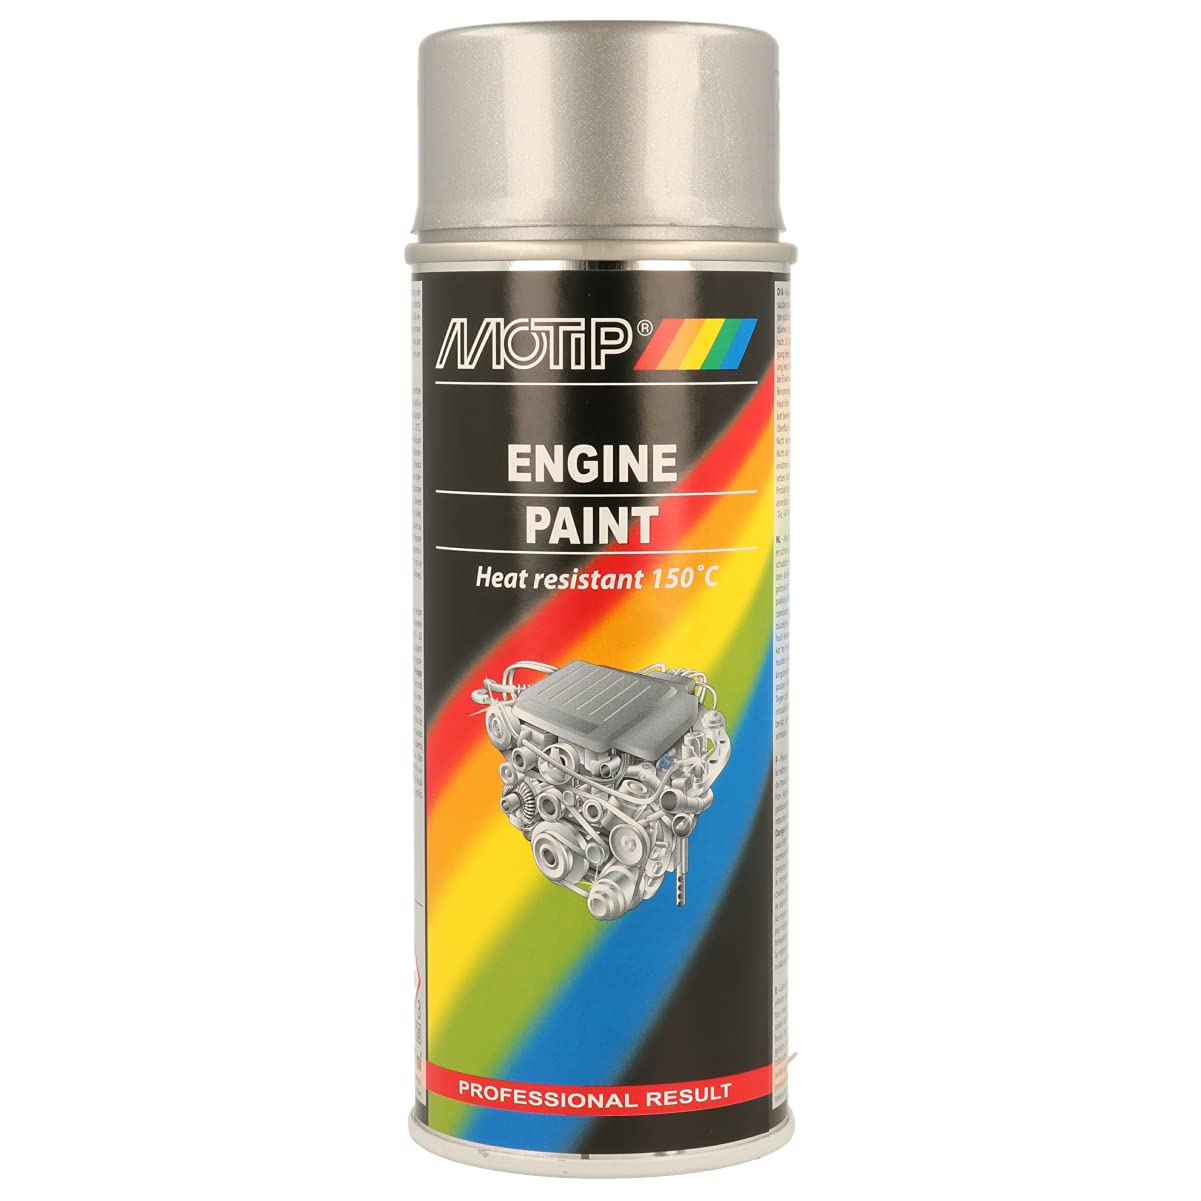 MOTIP M04093 Motorfarbe Tun. Engine alumini. Spray 400 ml von Motip